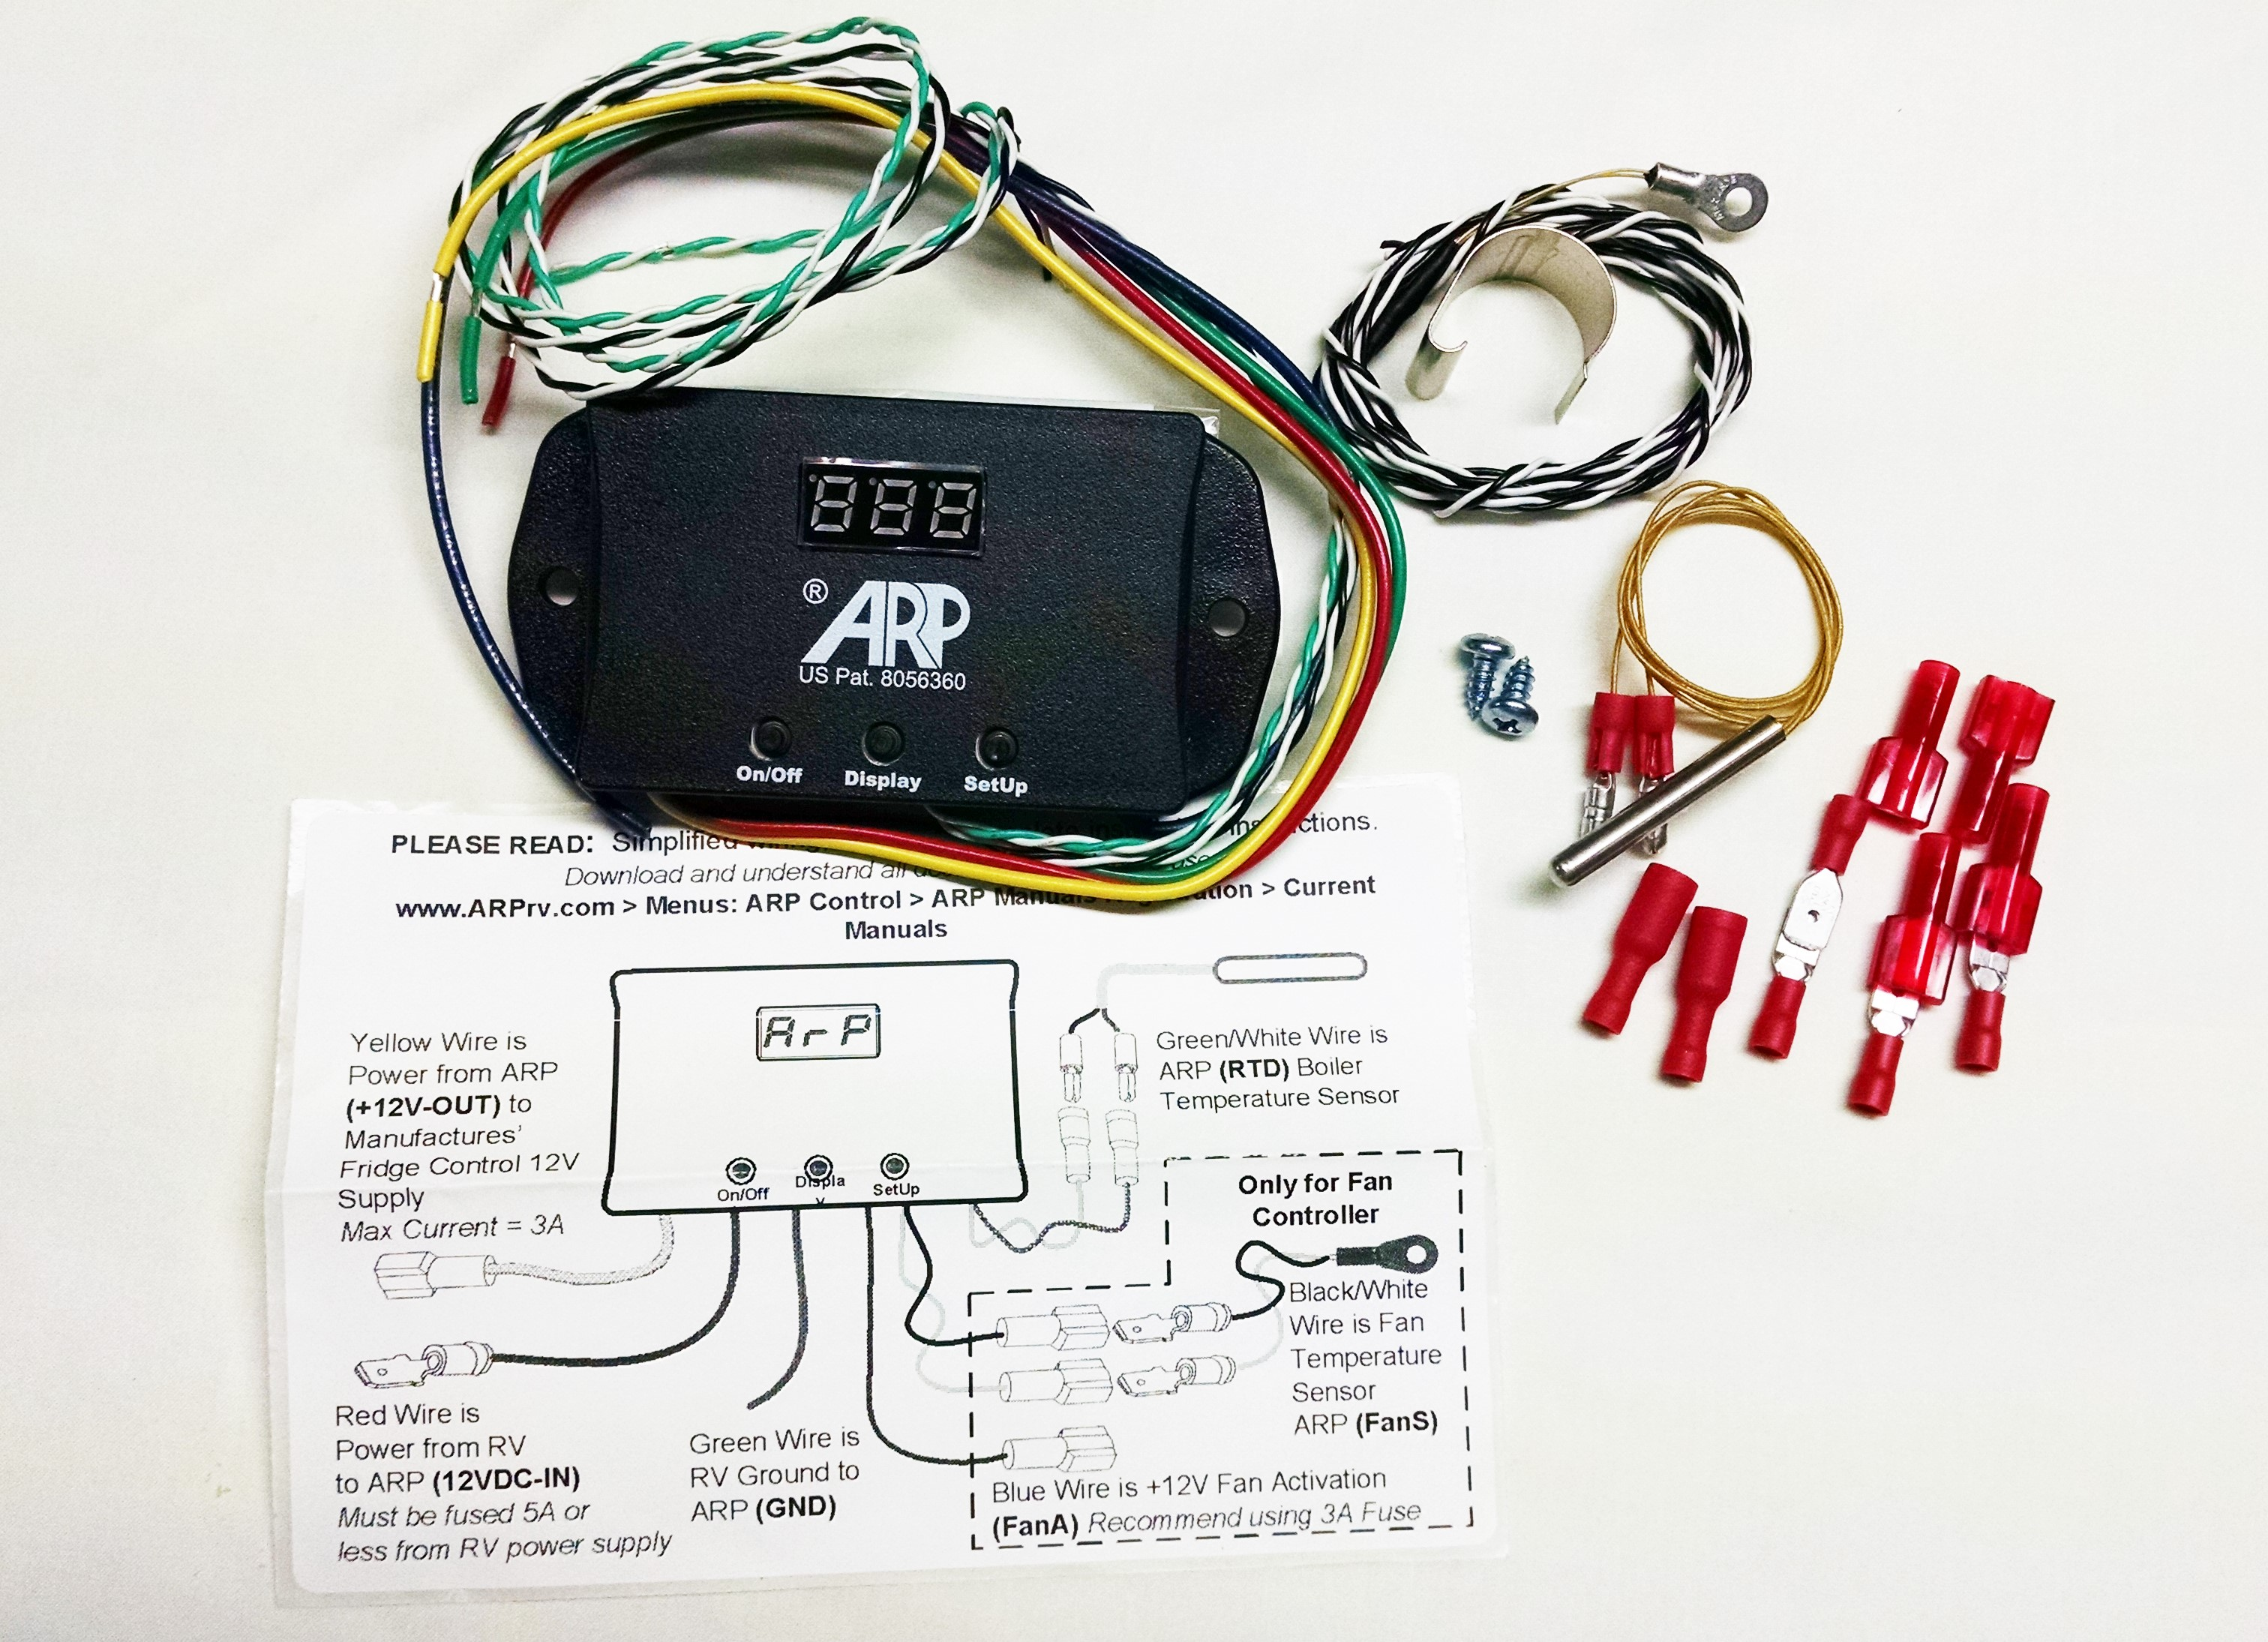 norcold-thermal-switch- Norcold Power Board Wiring Diagram on n811rt troubleshooting, model 1200lrim, model n611rt, rv refrigerator model n811vfrw6, 61655622 power supply, 1200lrim power board,